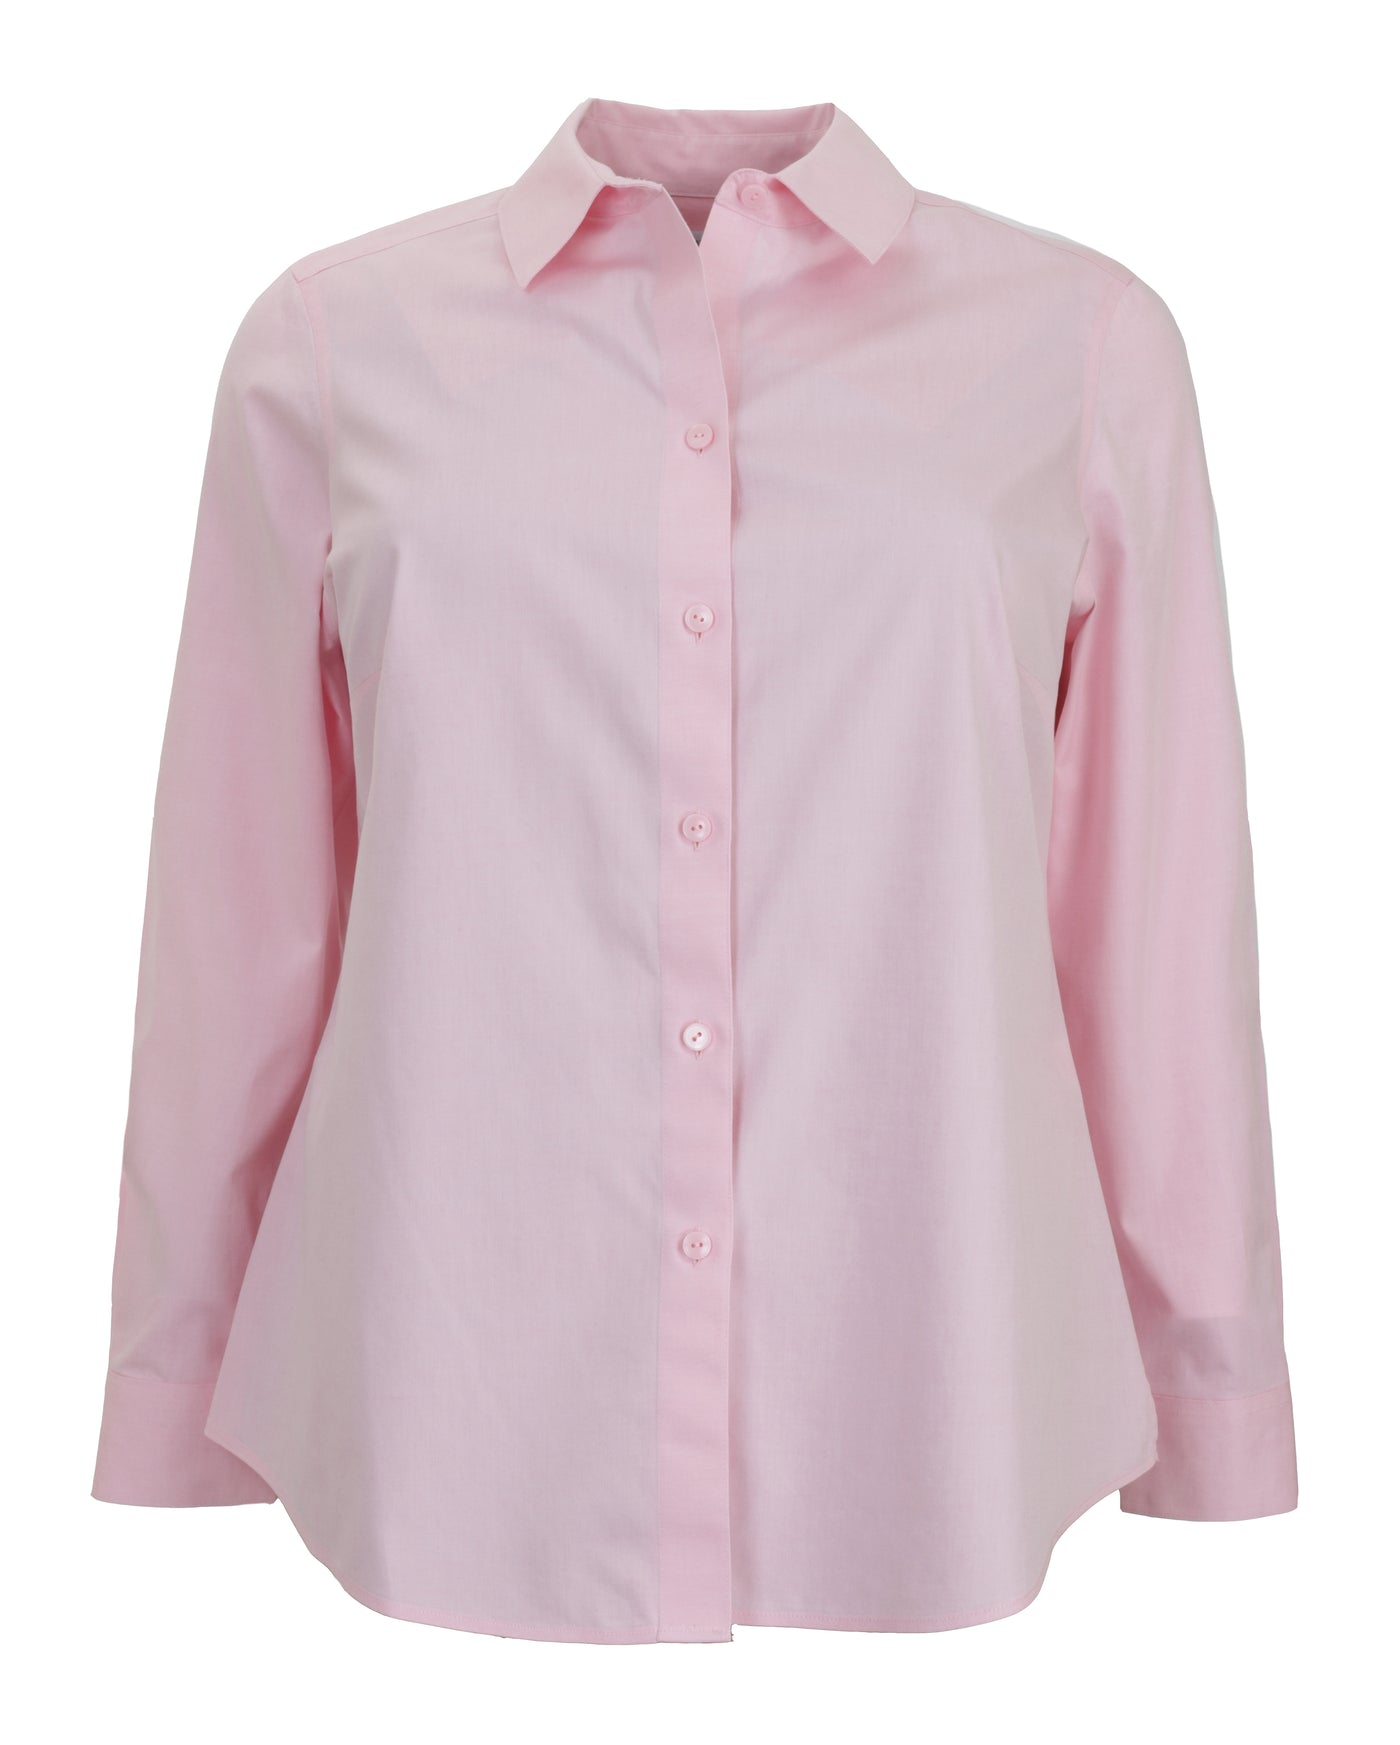 Foxcroft Long Sleeve Shaped Non-Iron Shirt in Pink